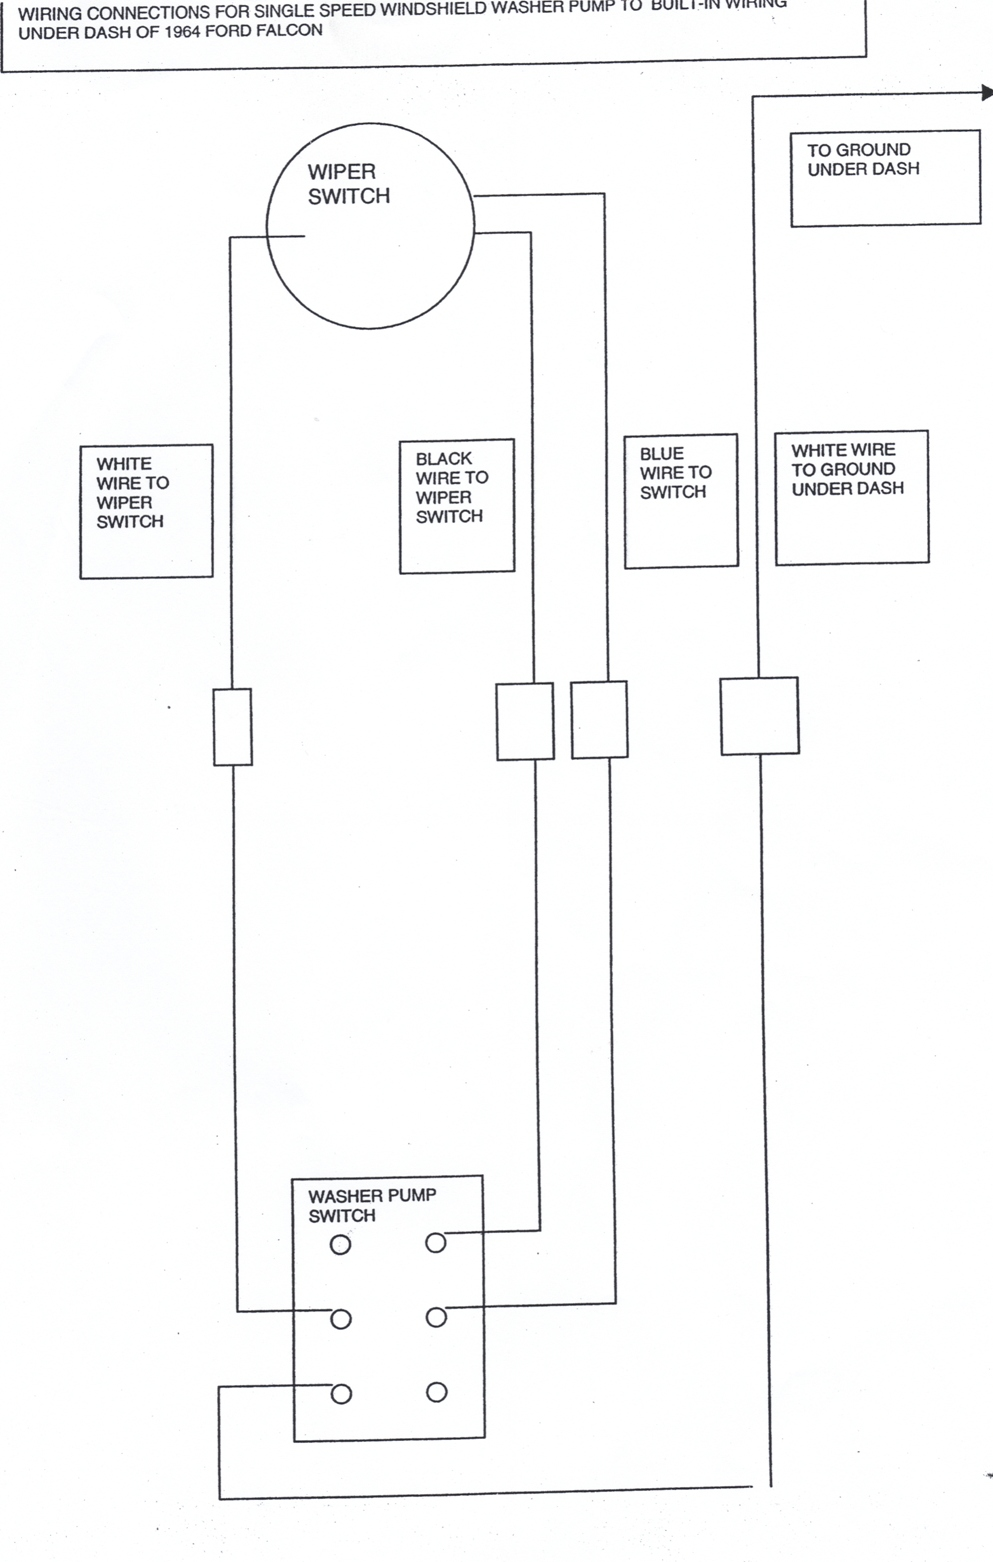 1968 ranchero wiring diagram html